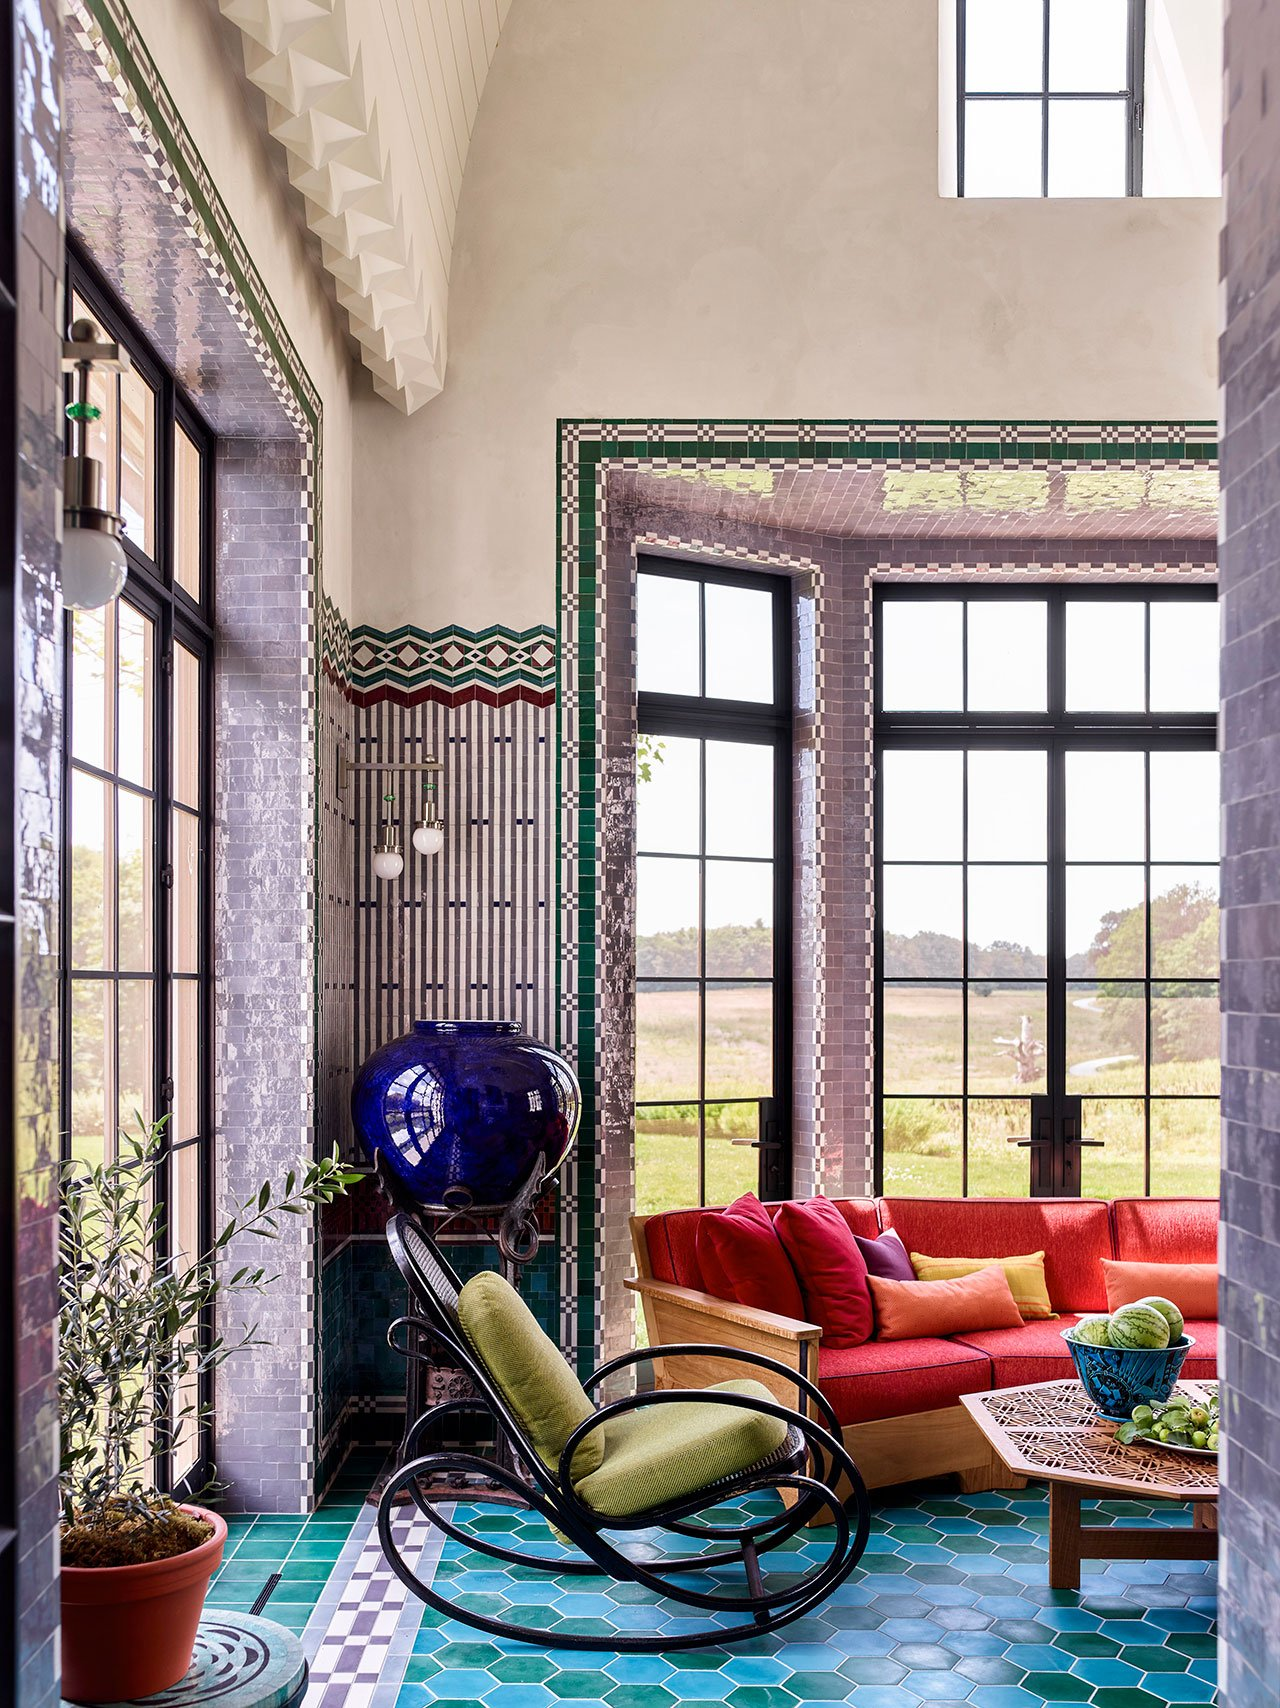 The walls of the screened porch are clad in green, burgundy, gray, and purple Moroccan zellige tiles in patterns inspired by the work of Koloman Moser and Joseph Urban. Photography by Eric Piasecki.